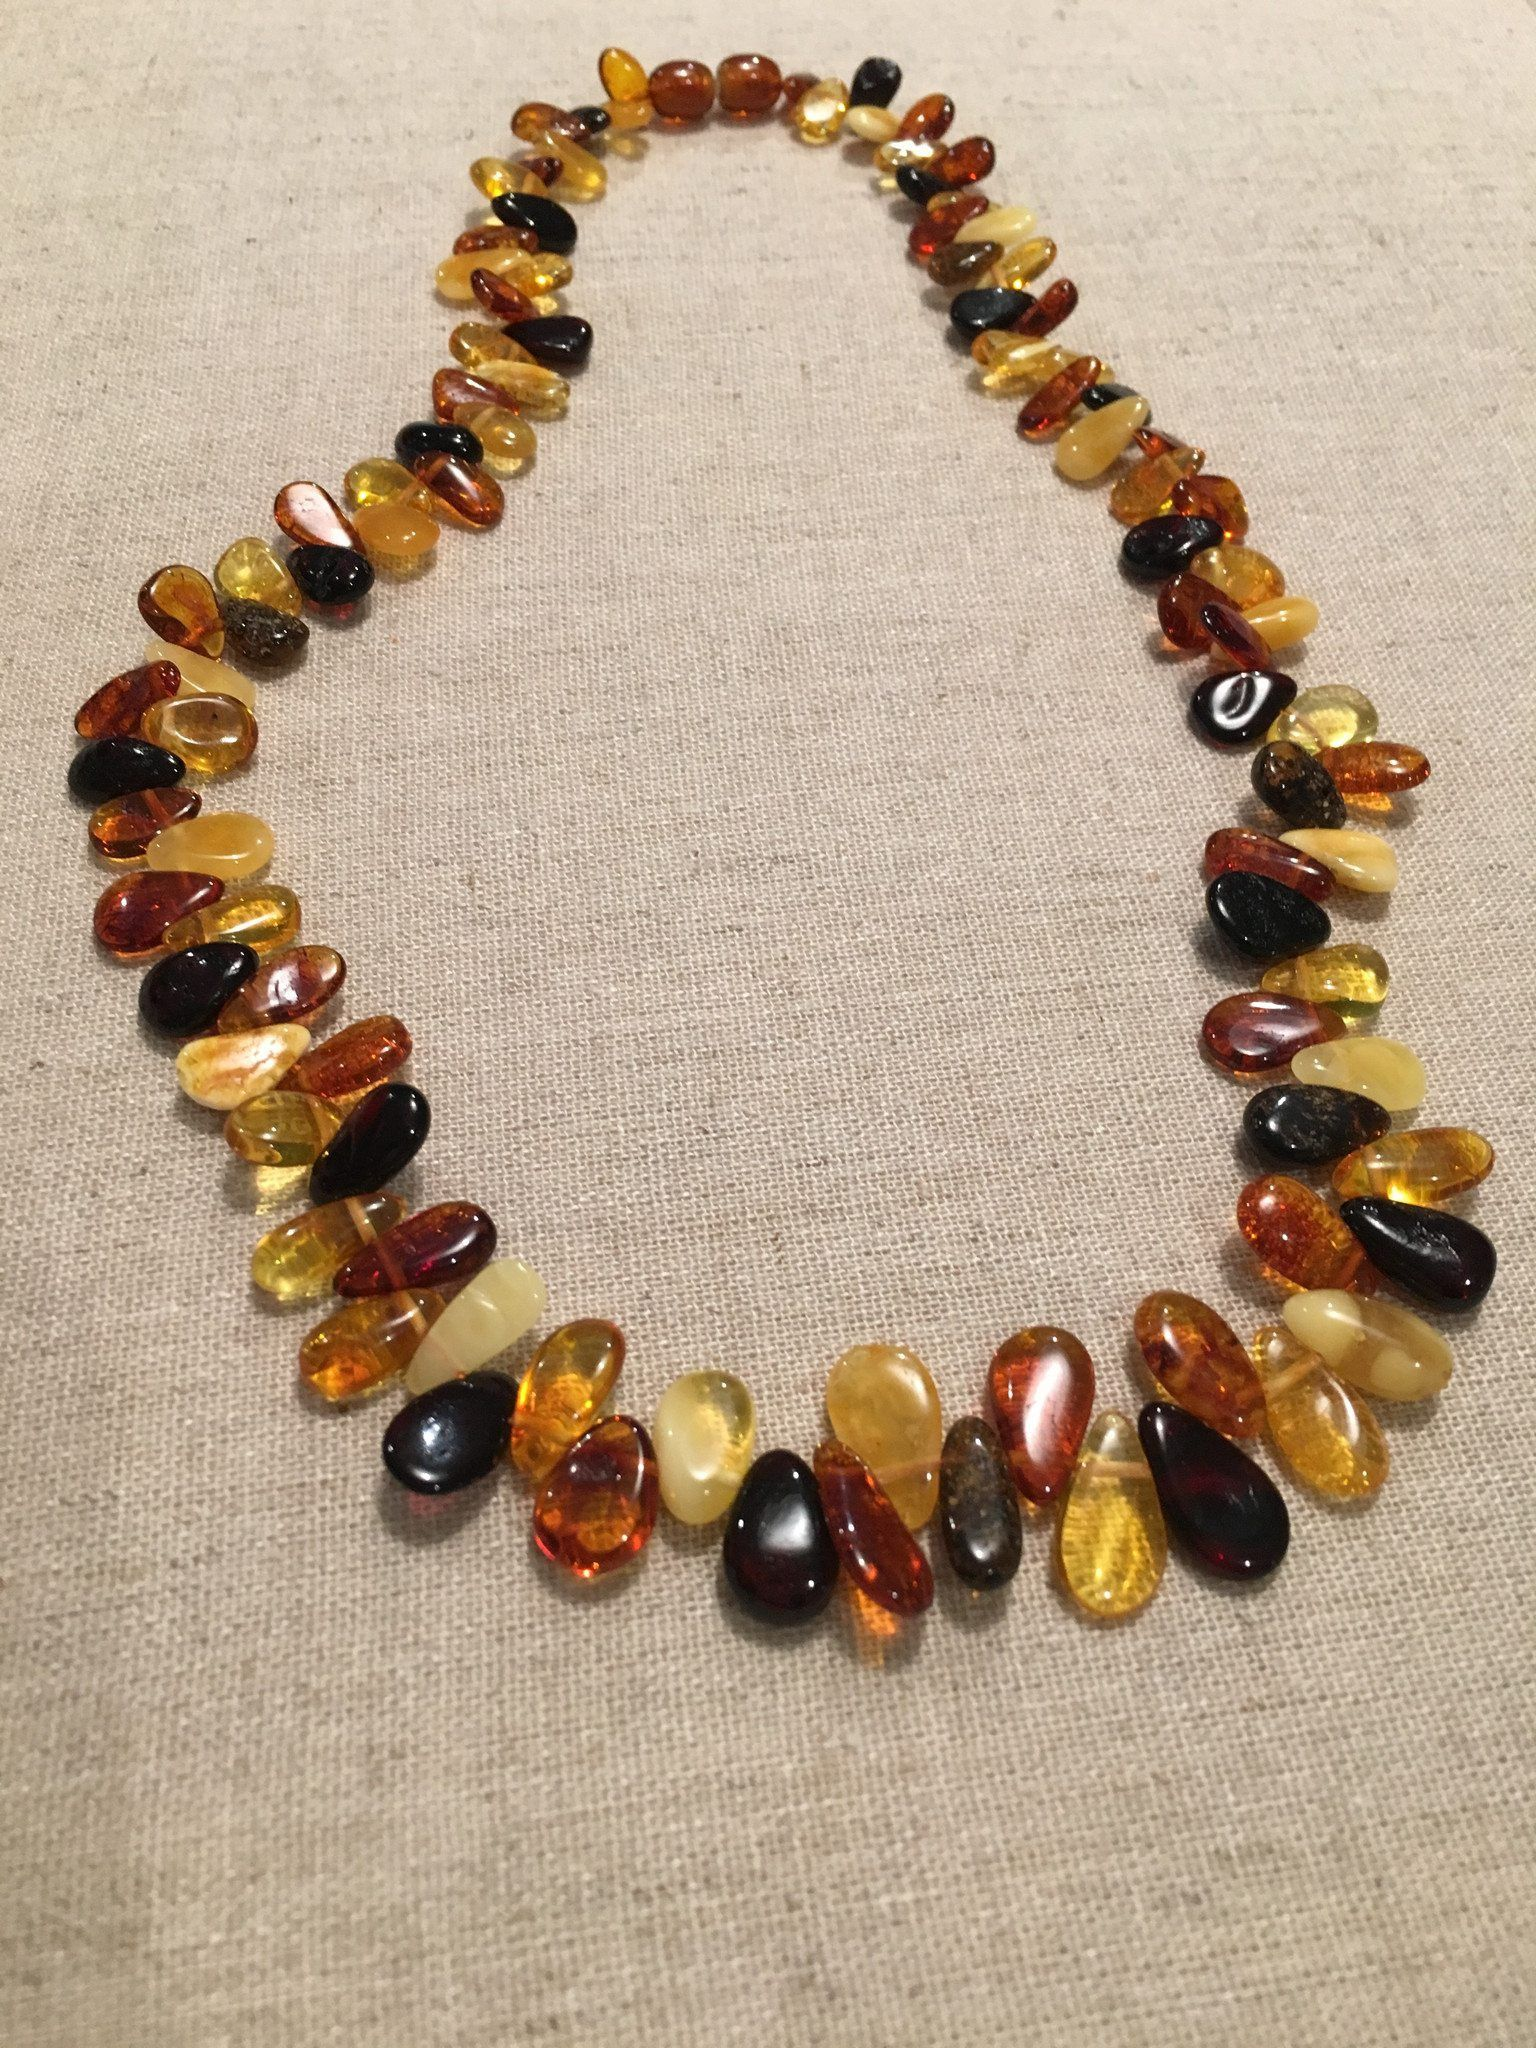 Raw genuine Baltic amber necklace 17.3 inch